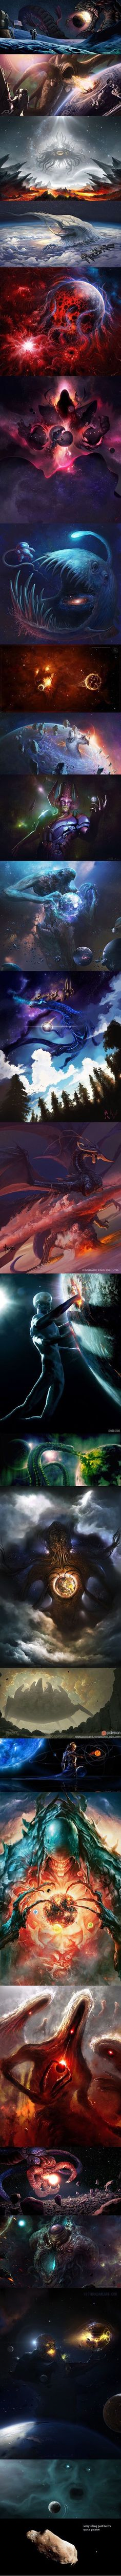 Do you guys think creatures like these could be possible somewhere out there in the universe?